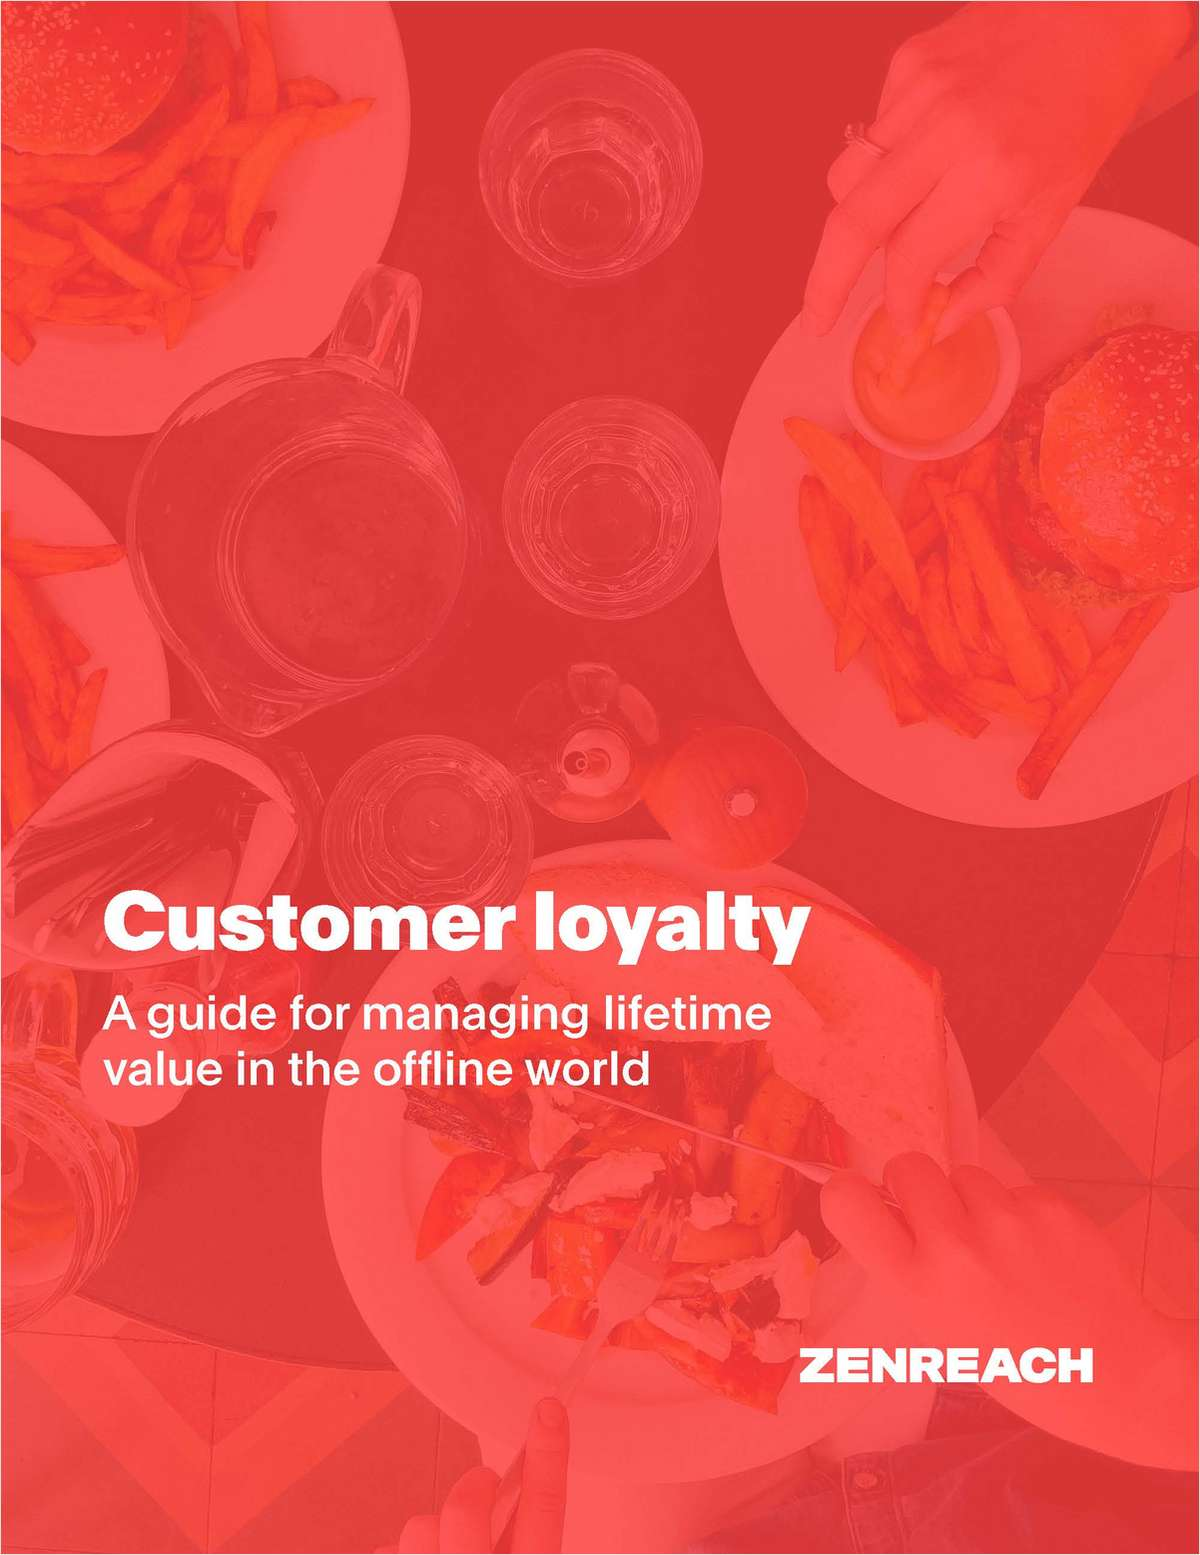 Customer Loyalty: A Guide to Understanding Lifetime Value in the Offline World